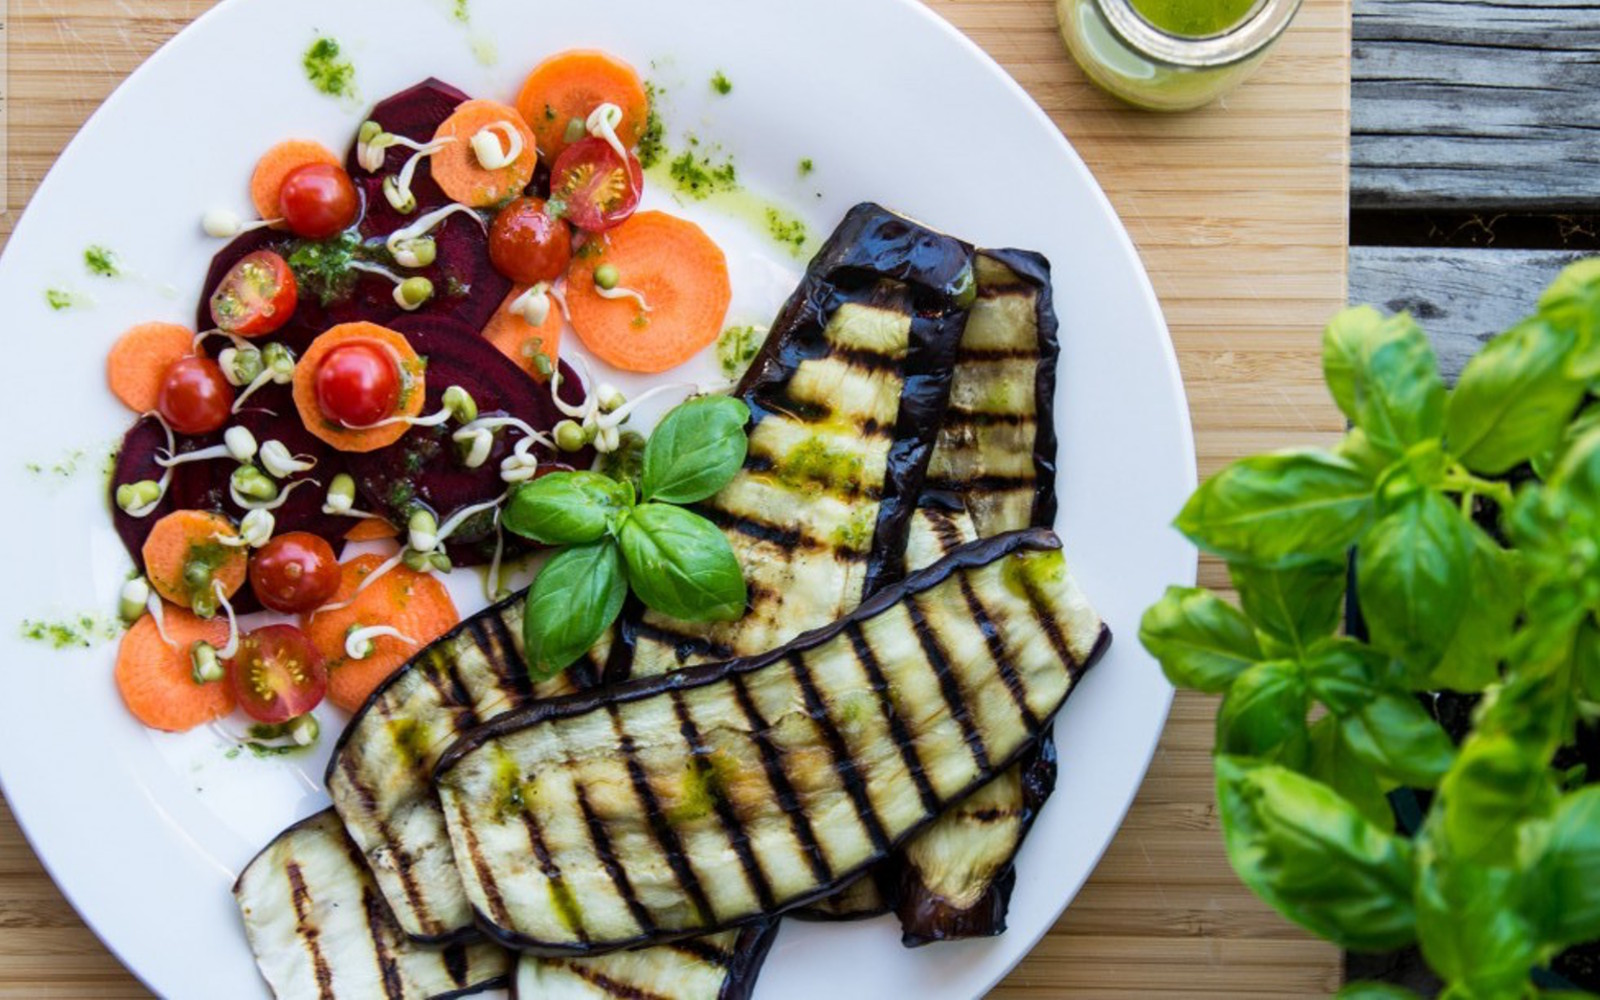 Grilled Eggplant With Lemon Basil Drizzle